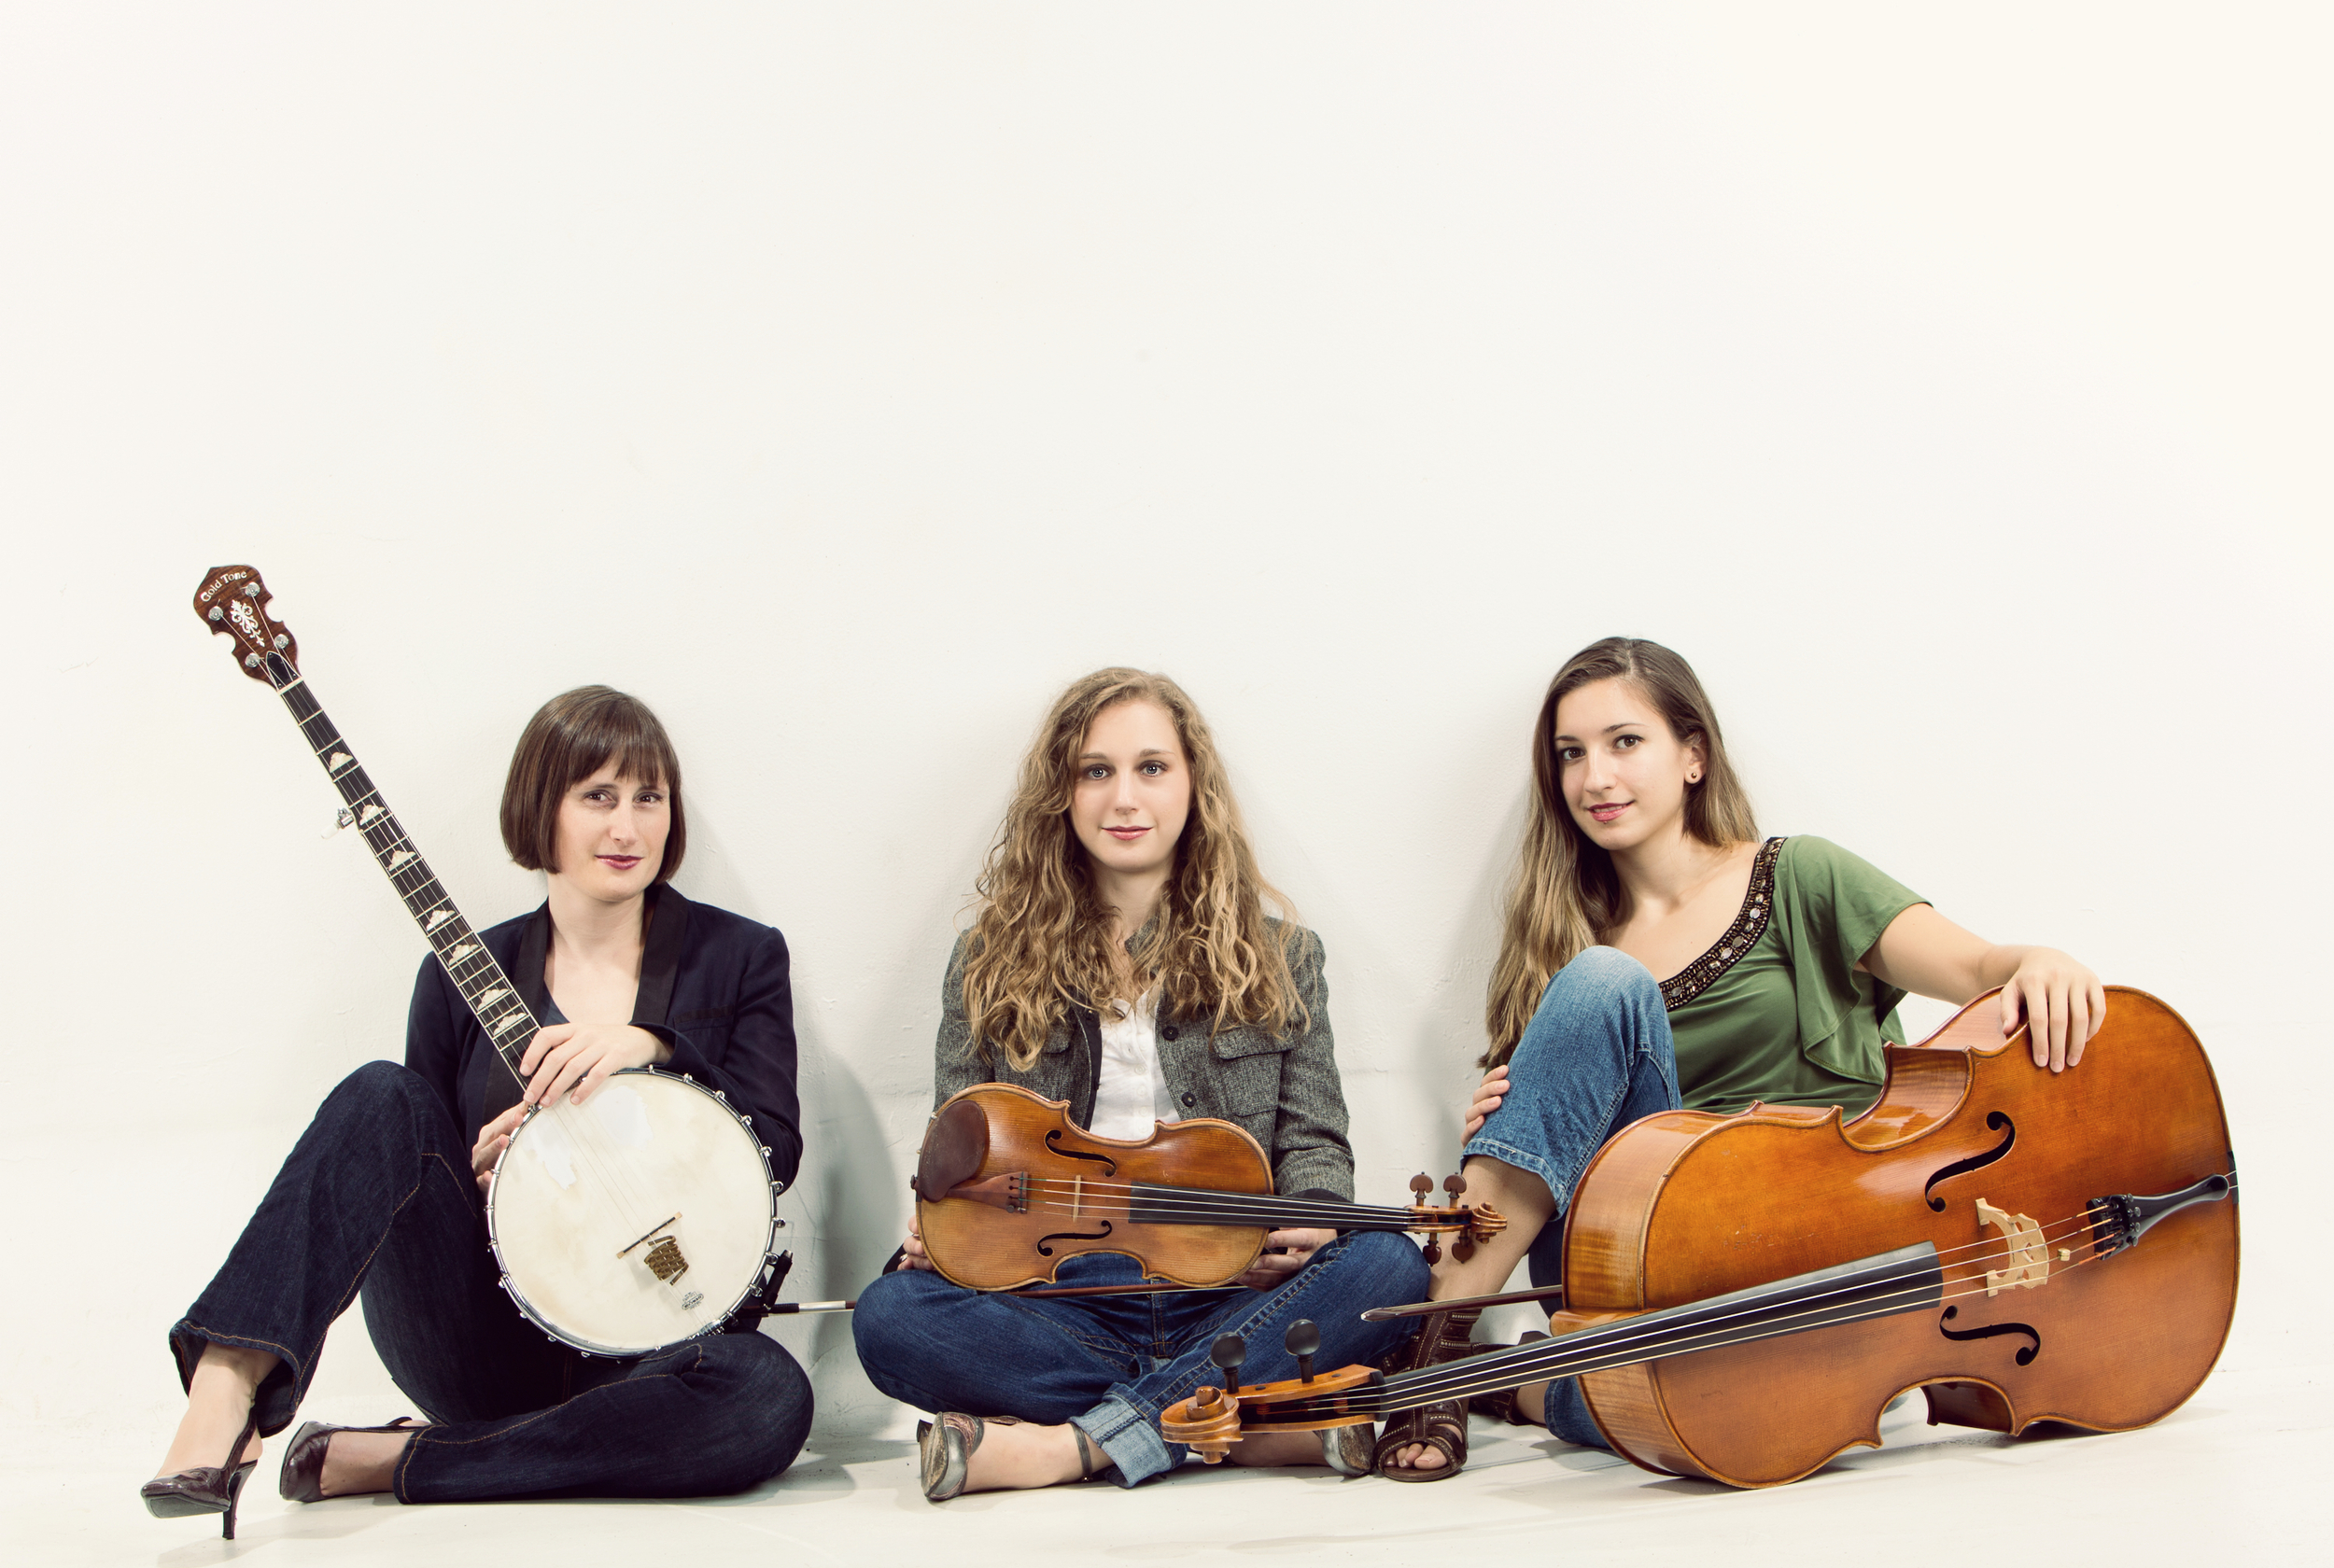 Photograph of Harpeth Rising (from left to right): Rebecca Reed-Lunn,Jordana Greenberg and   Maria Di Meglio,courtesy of Harpeth Rising Management